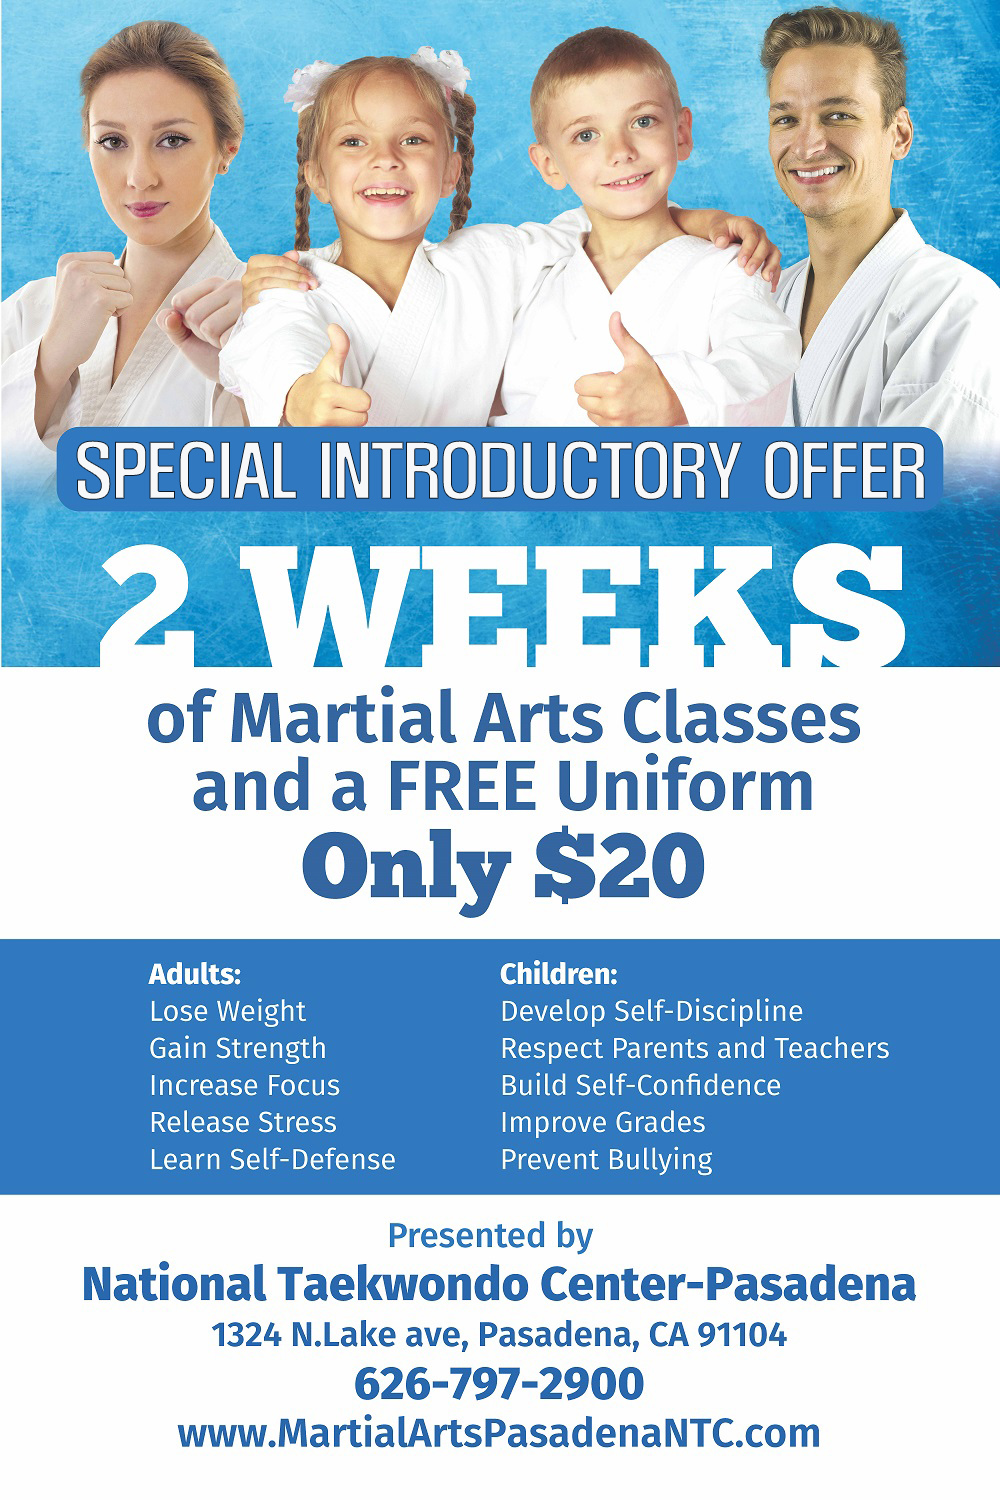 INTRODUCTORY OFFER POSTER